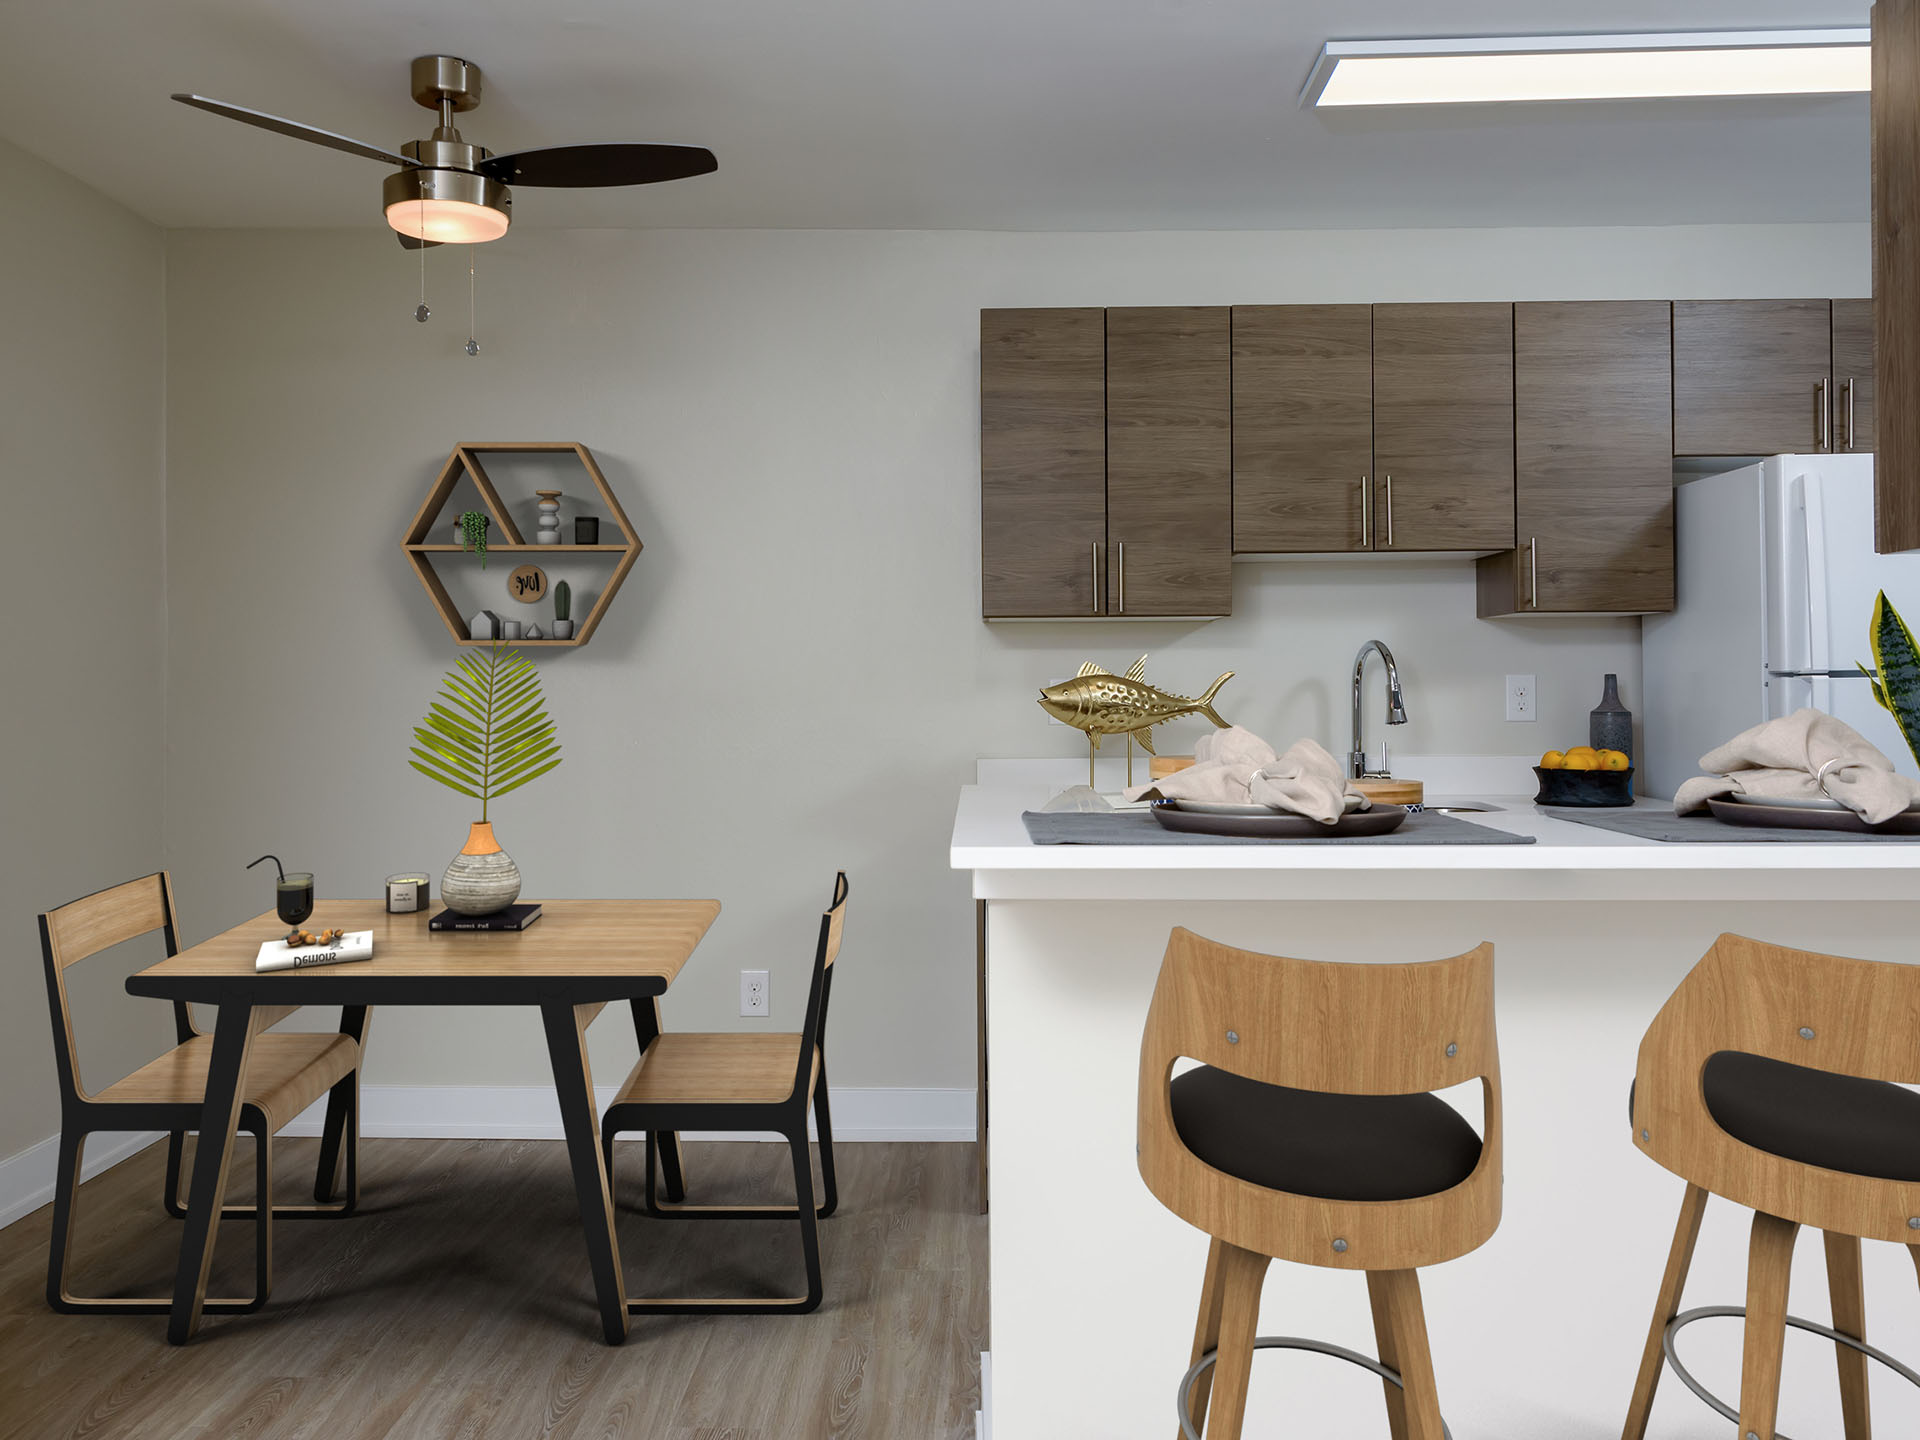 Lehigh Flats - Kitchen and Dining Space